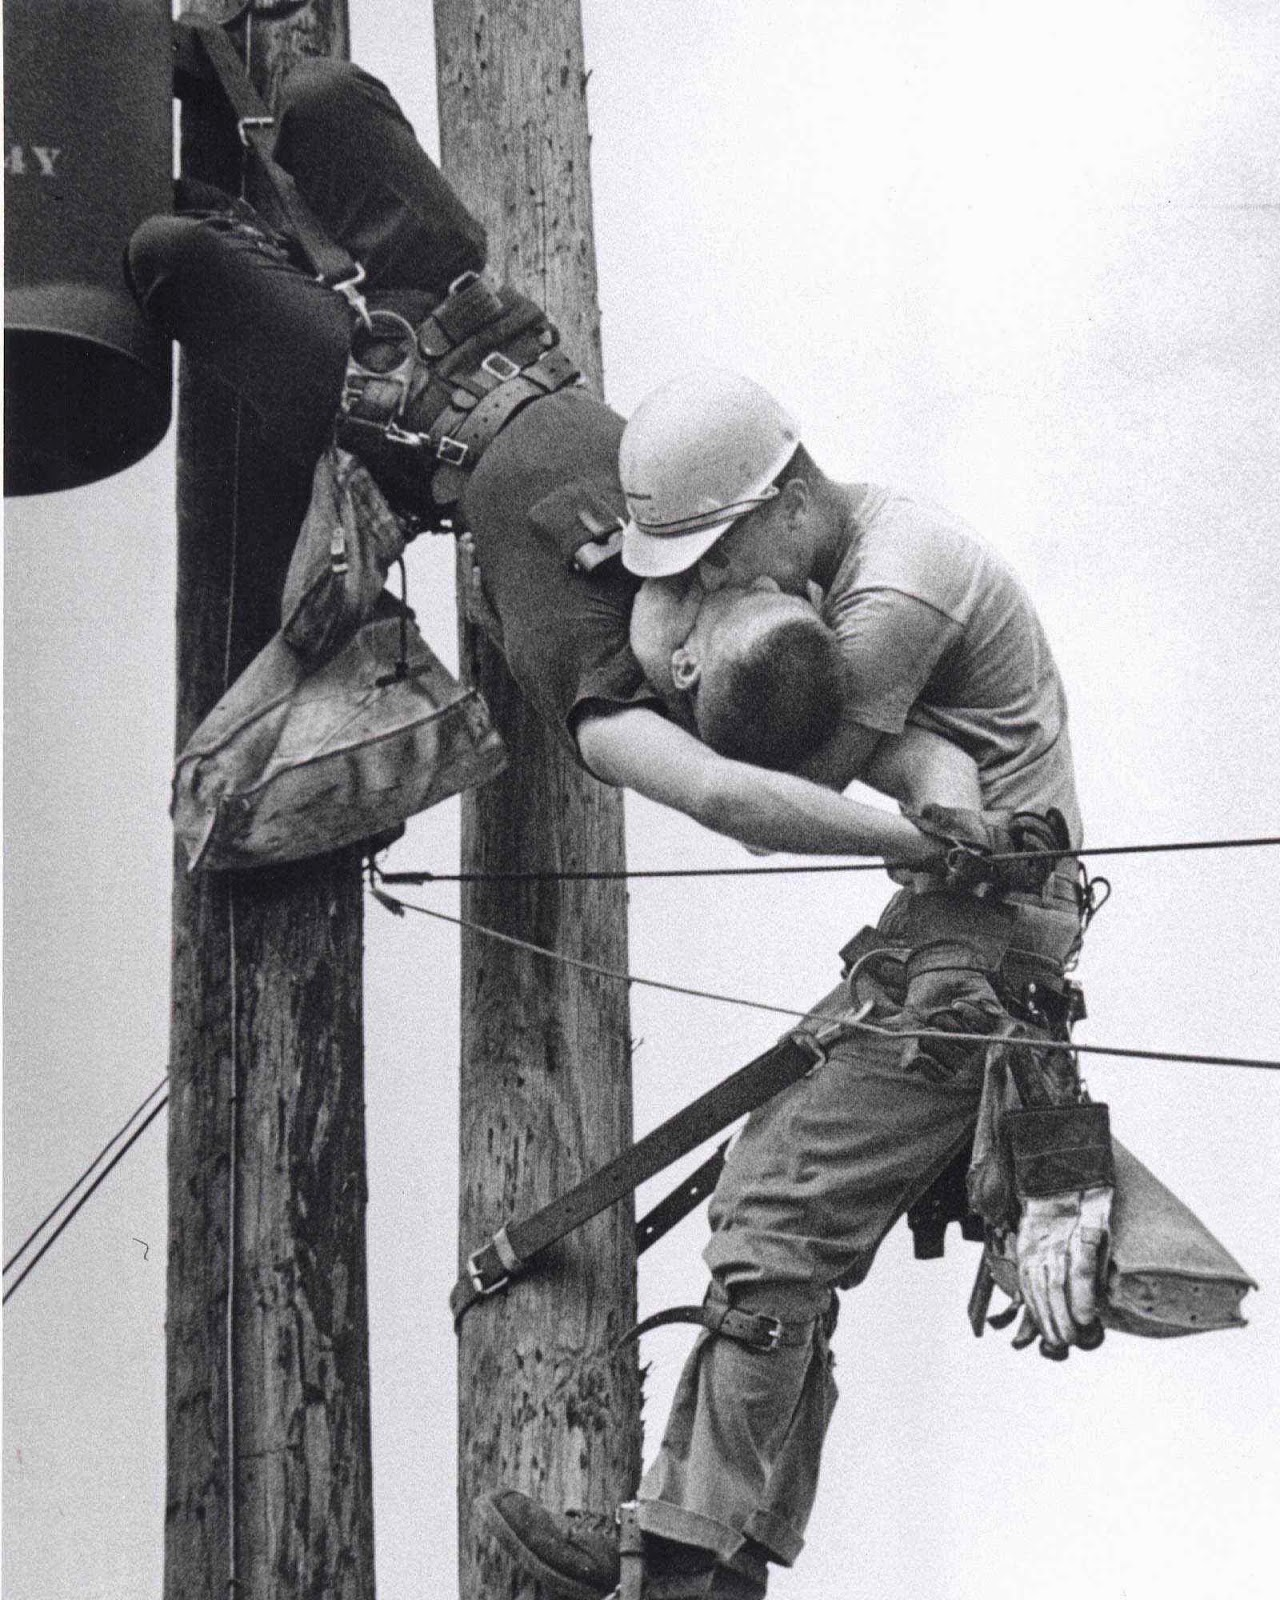 The Kiss of Life - A utility worker giving mouth-to-mouth to co-worker after he contacted a high voltage wire, 1967.jpg